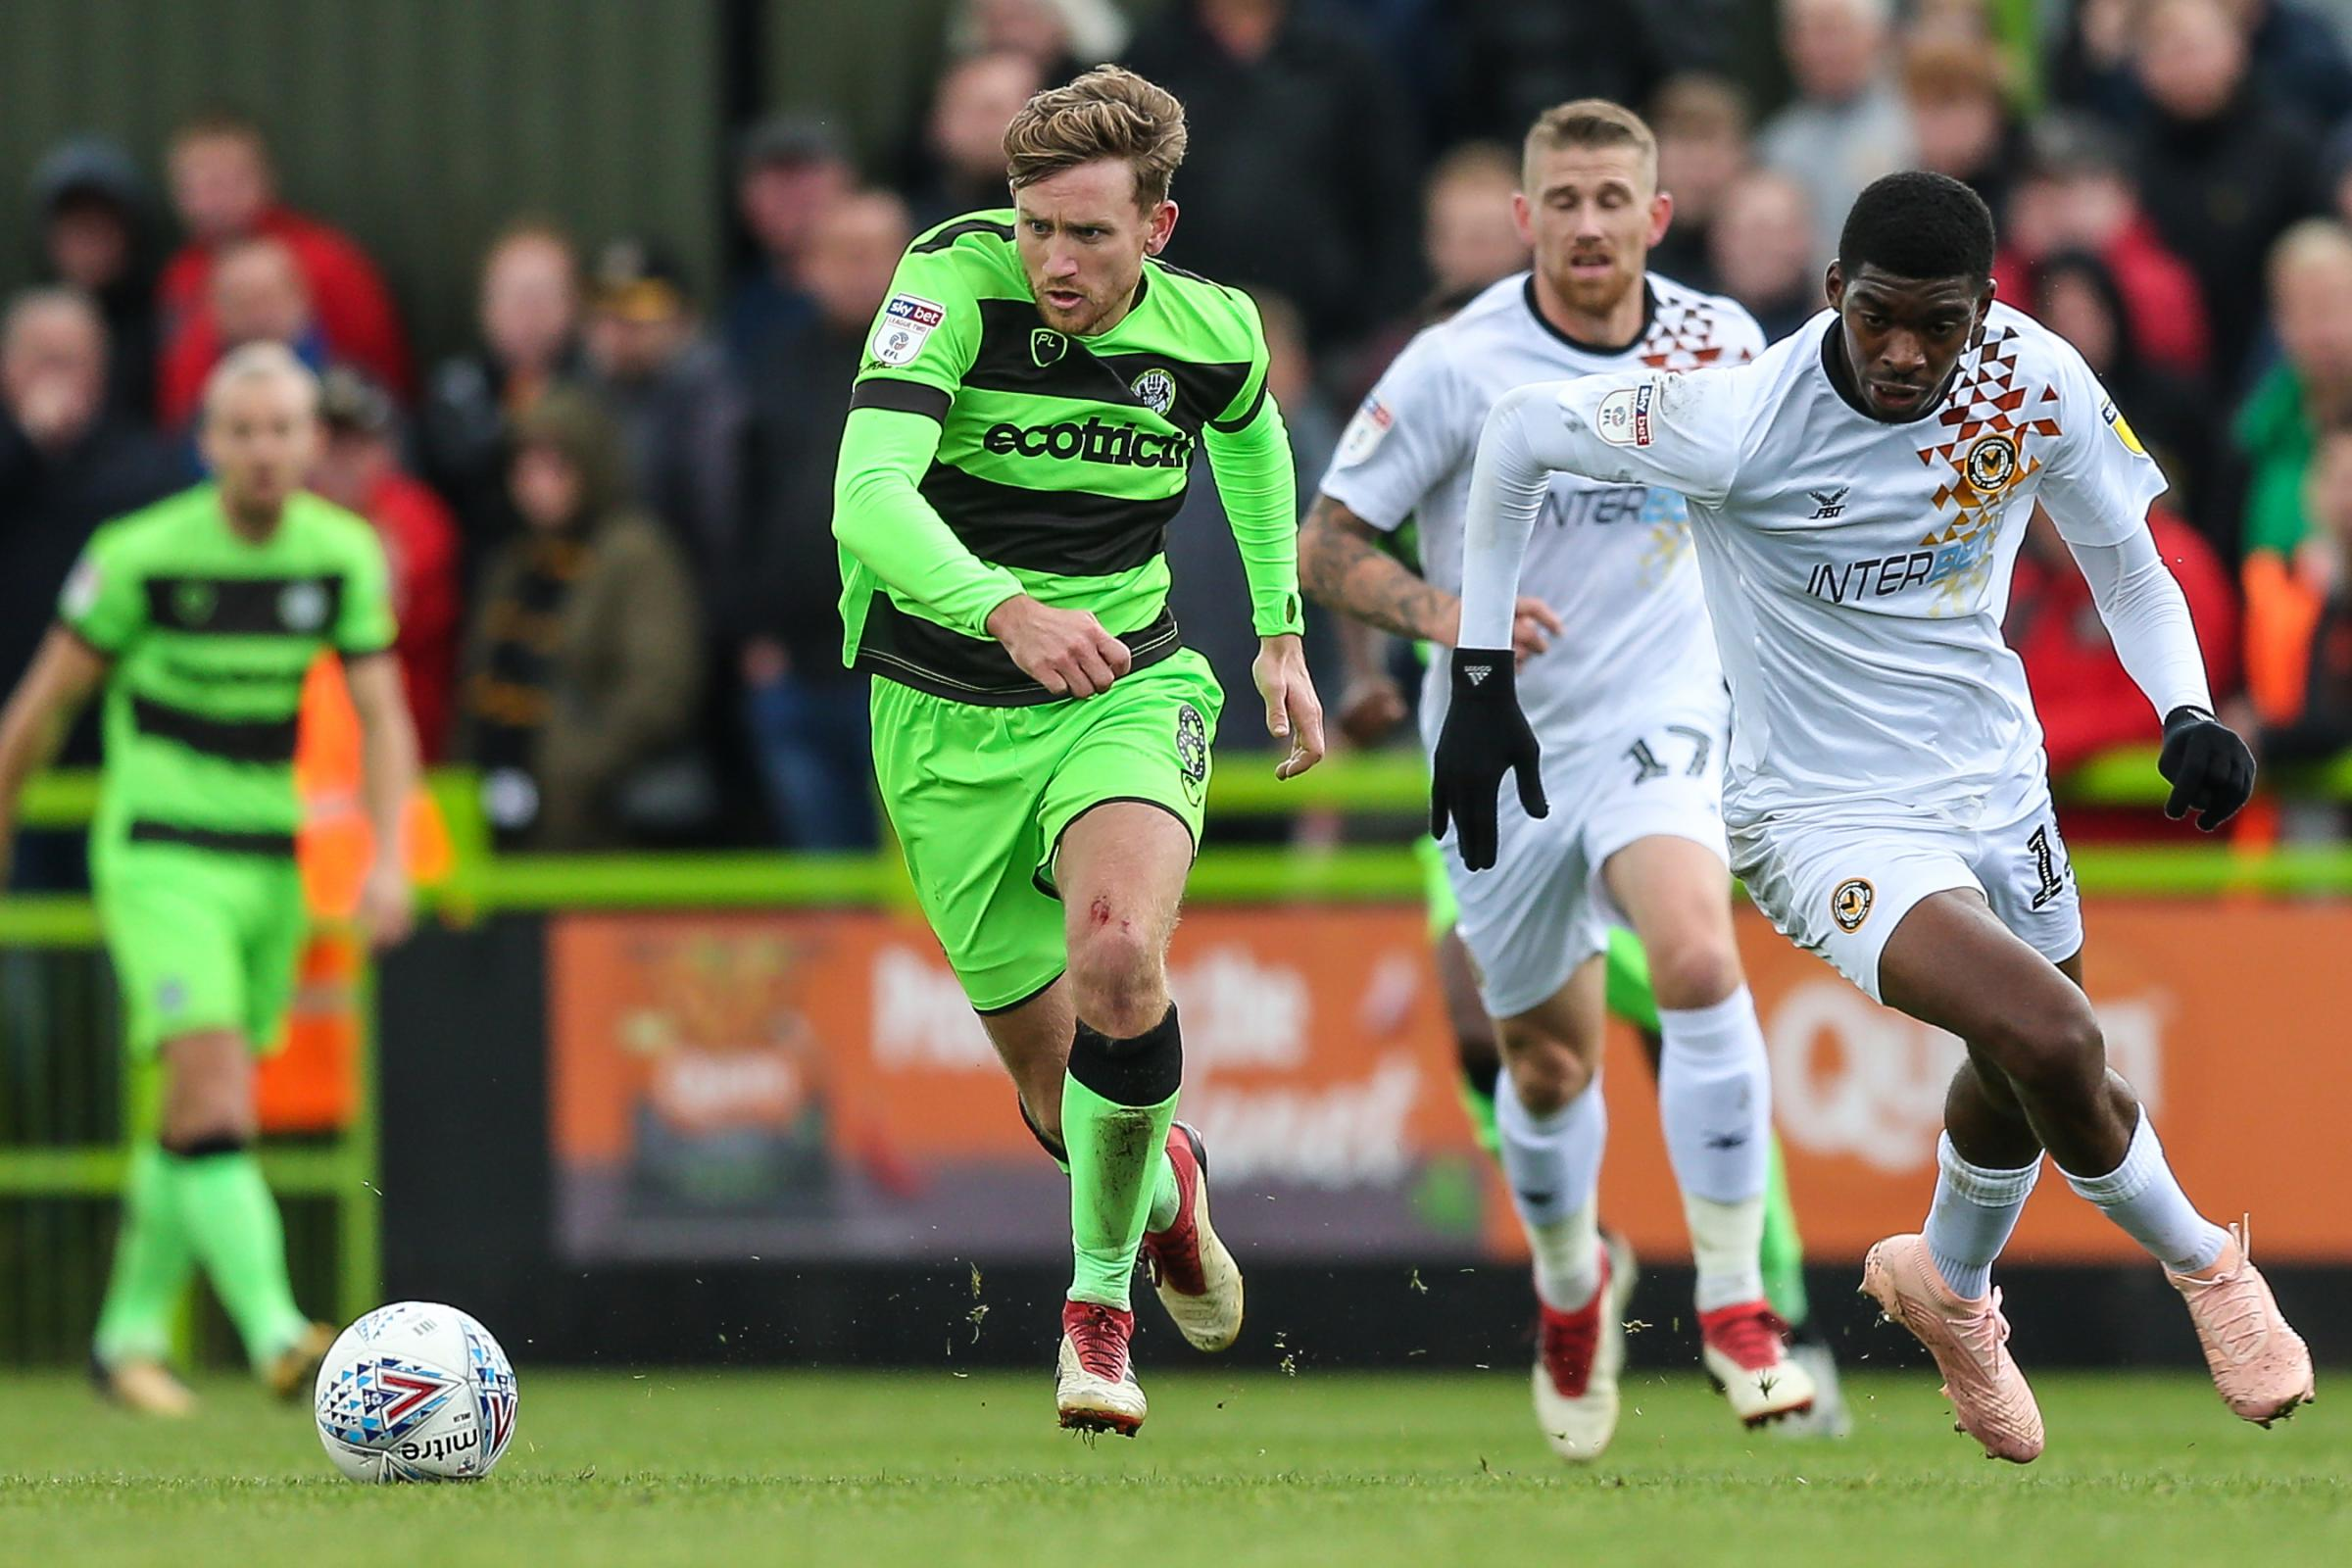 Forest Green Rovers Dayle Grubb(8) runs past Newport County's Tyreeq Bakinson(15) during the EFL Sky Bet League 2 match between Forest Green Rovers and Newport County at the New Lawn, Forest Green, United Kingdom on 6 October 2018.